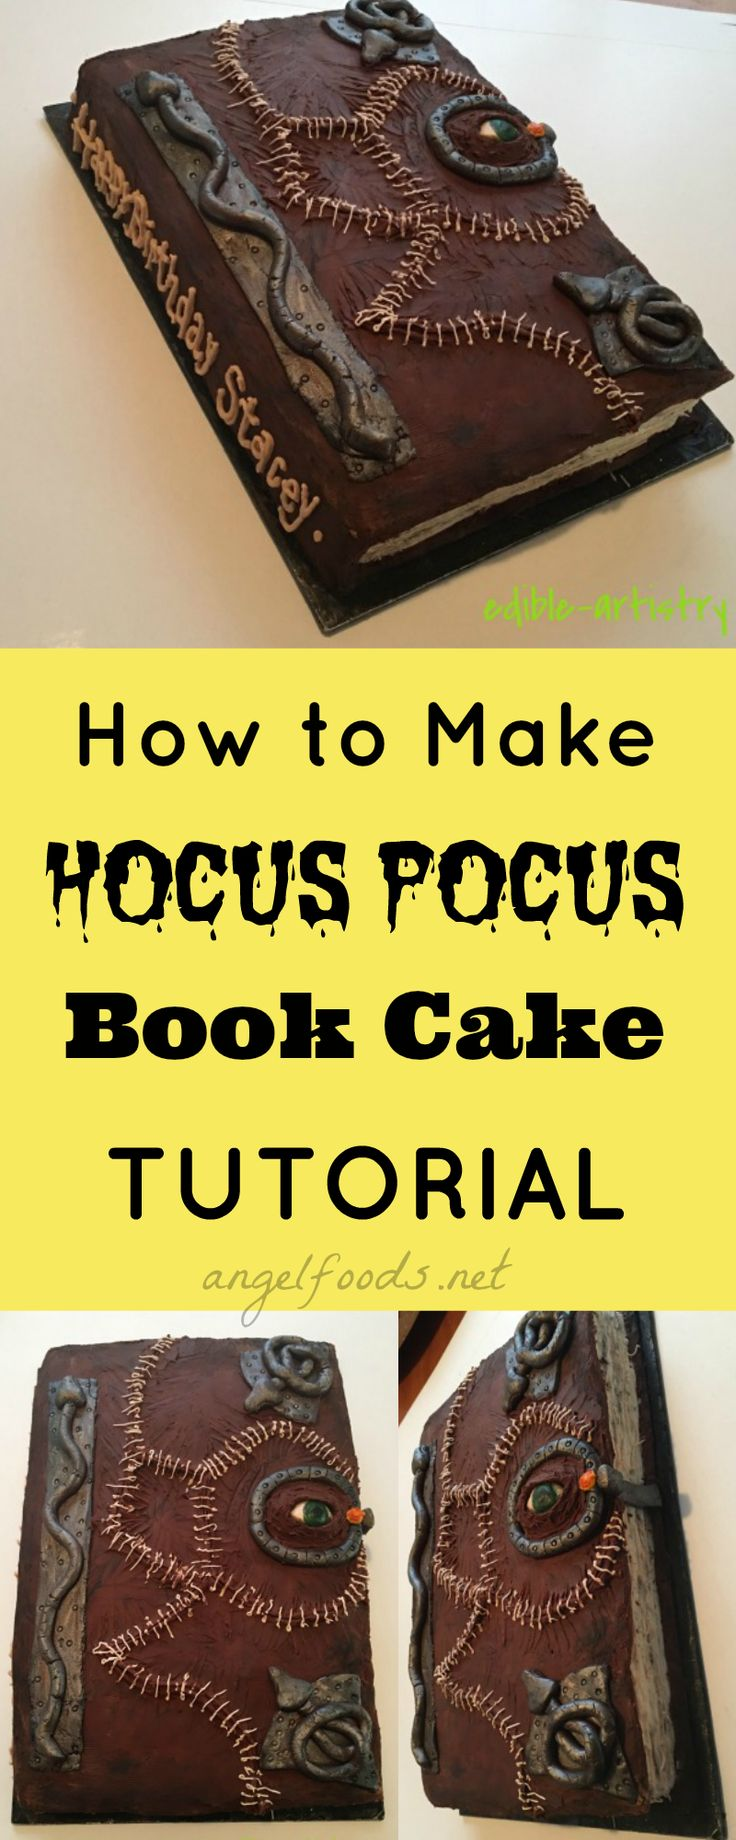 How To Make A Book Yourself : Best cake ideas images on pinterest biscuits